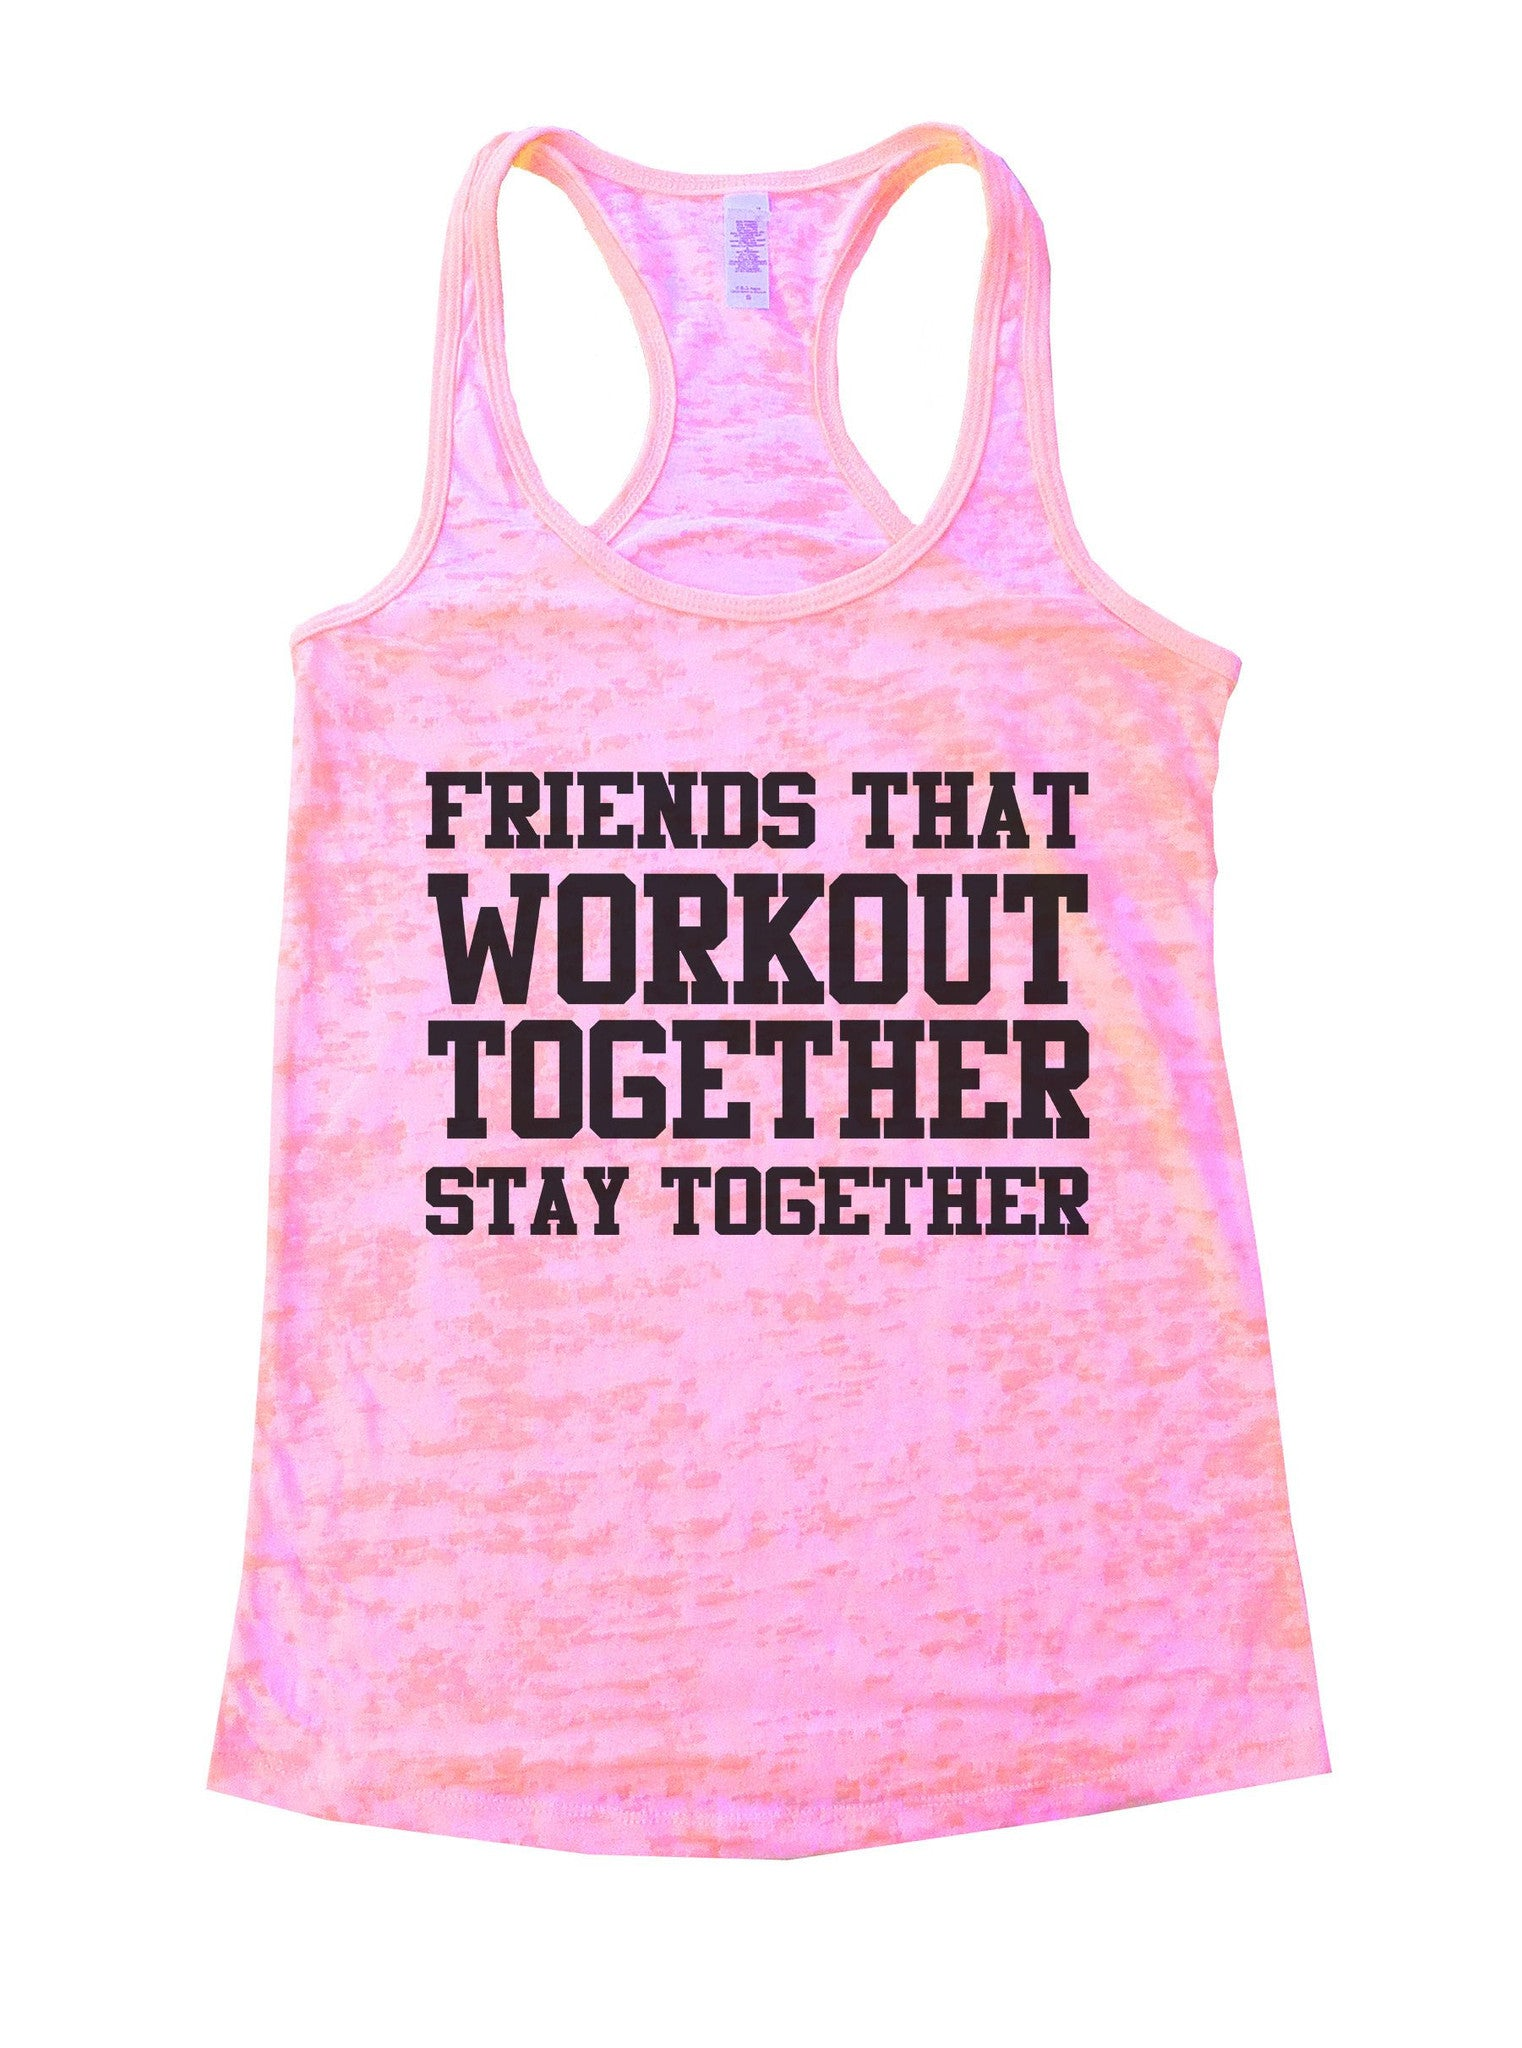 Friends That Workout Together Stay Together Burnout Tank Top By BurnoutTankTops.com - 847 - Funny Shirts Tank Tops Burnouts and Triblends  - 1